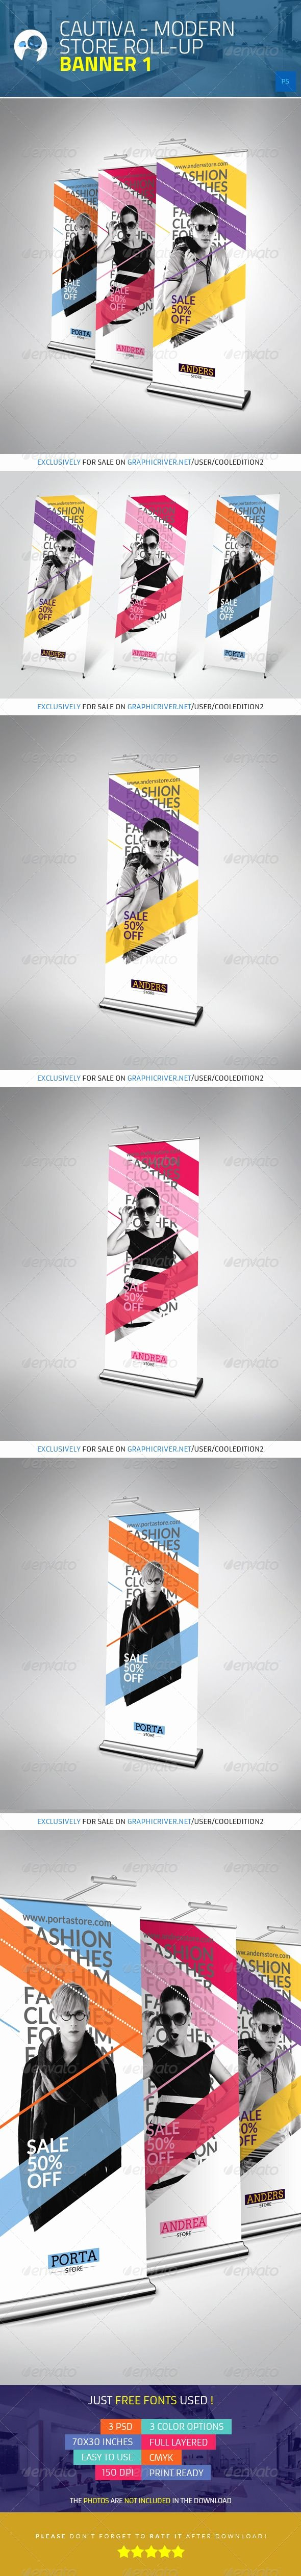 Retractable Banner Template Psd Lovely 1000 Images About Roll Up Banners On Pinterest